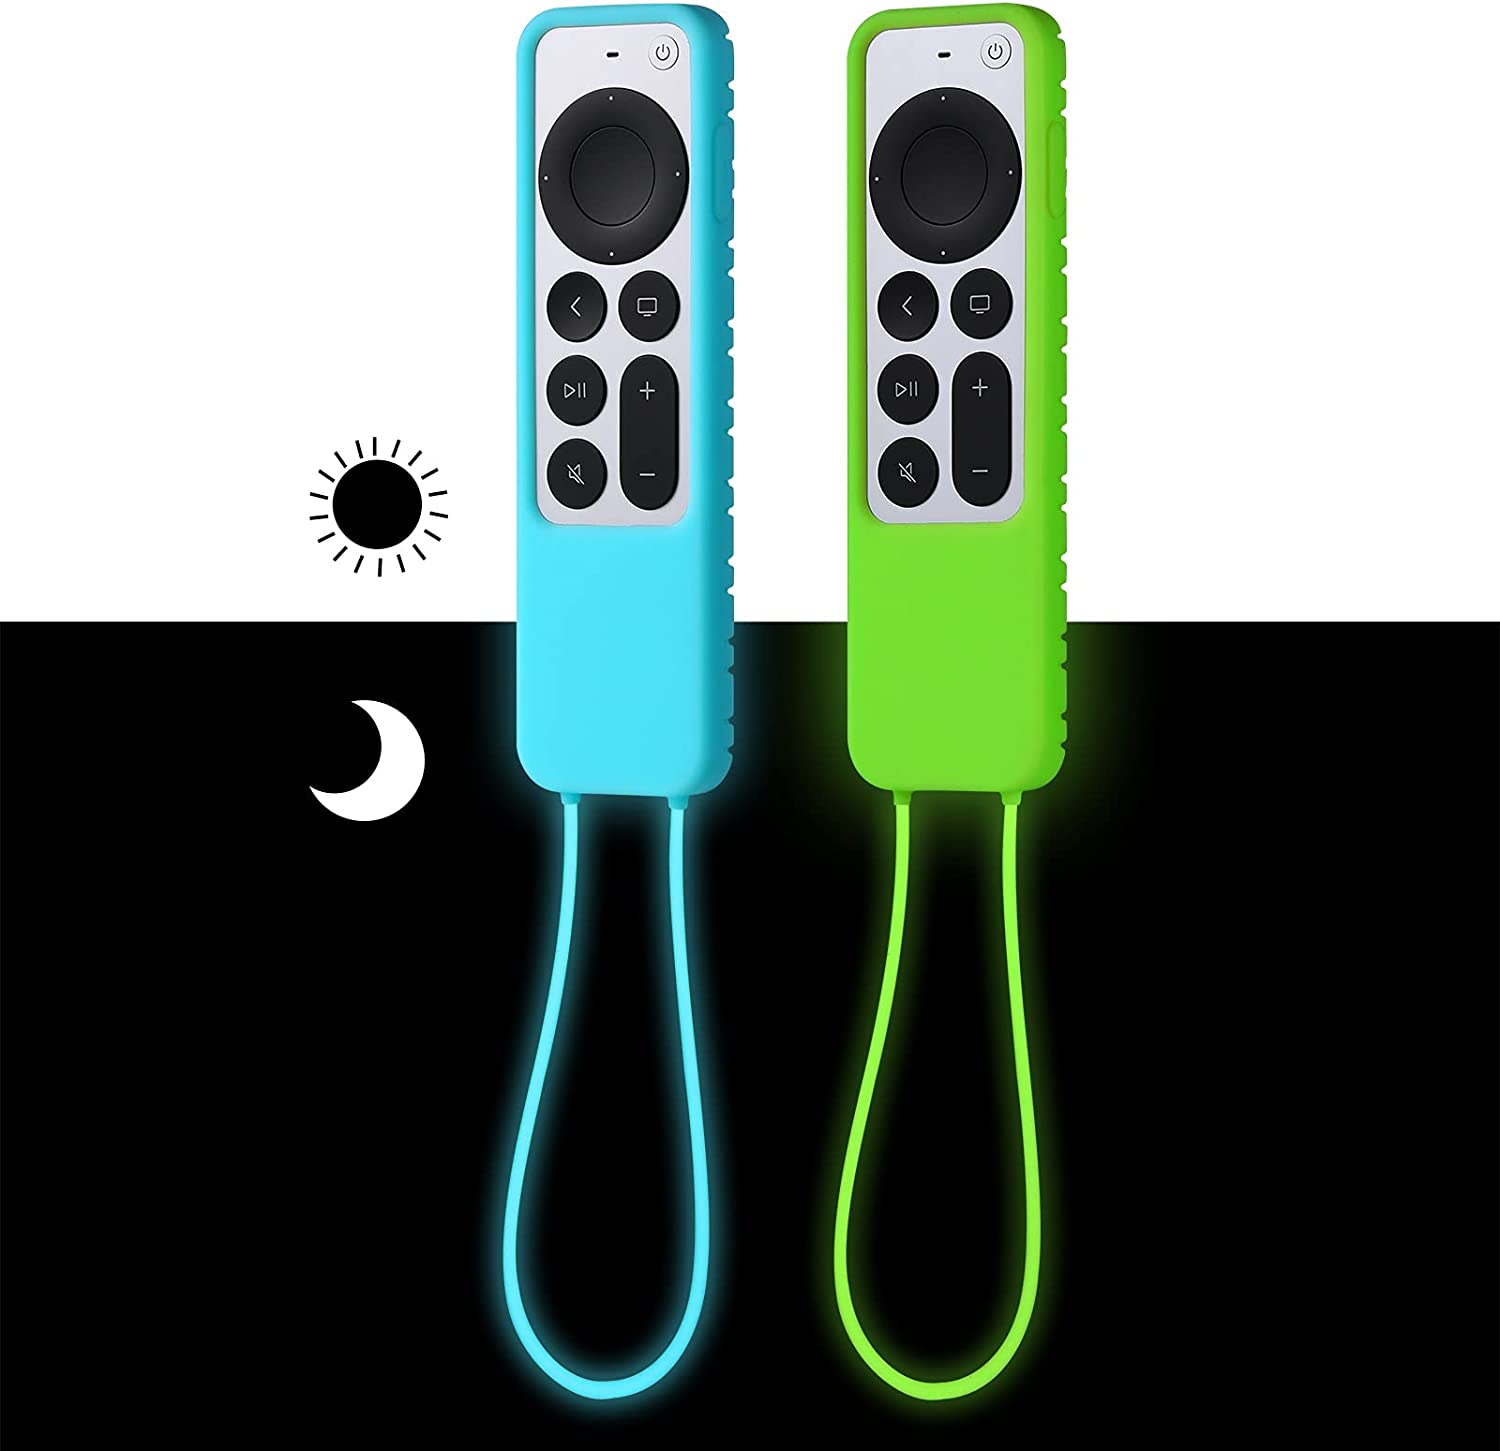 [2 Pack] ZYF Case for 2021 Apple TV Siri Remote (Glow in The Dark), Silicone Protective Cover for Apple TV 4K / HD Remote Controller (2nd Generation) - Sky Blue Glow & Green Glow